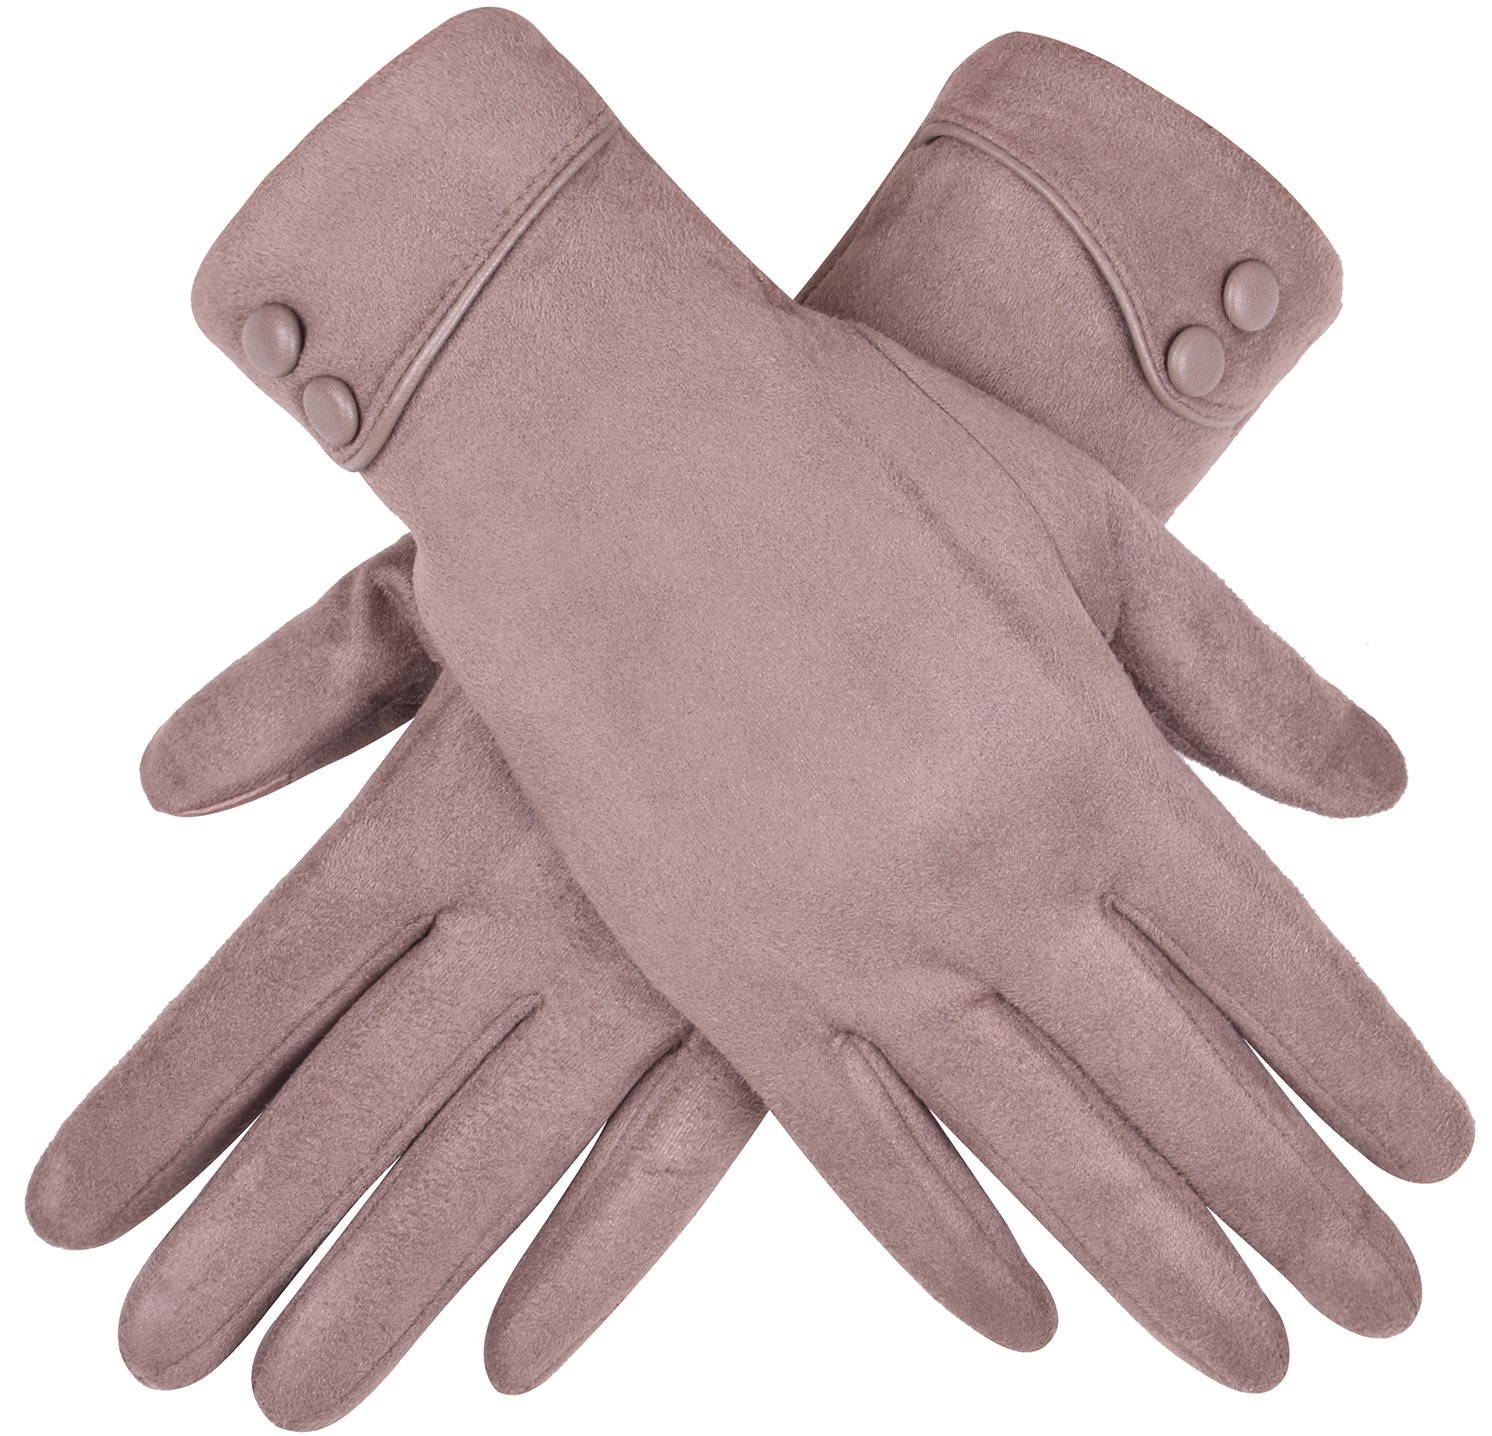 WDSKY Women's Winter Warm Touch Screen Gloves Cuffed with Buttons Khaki